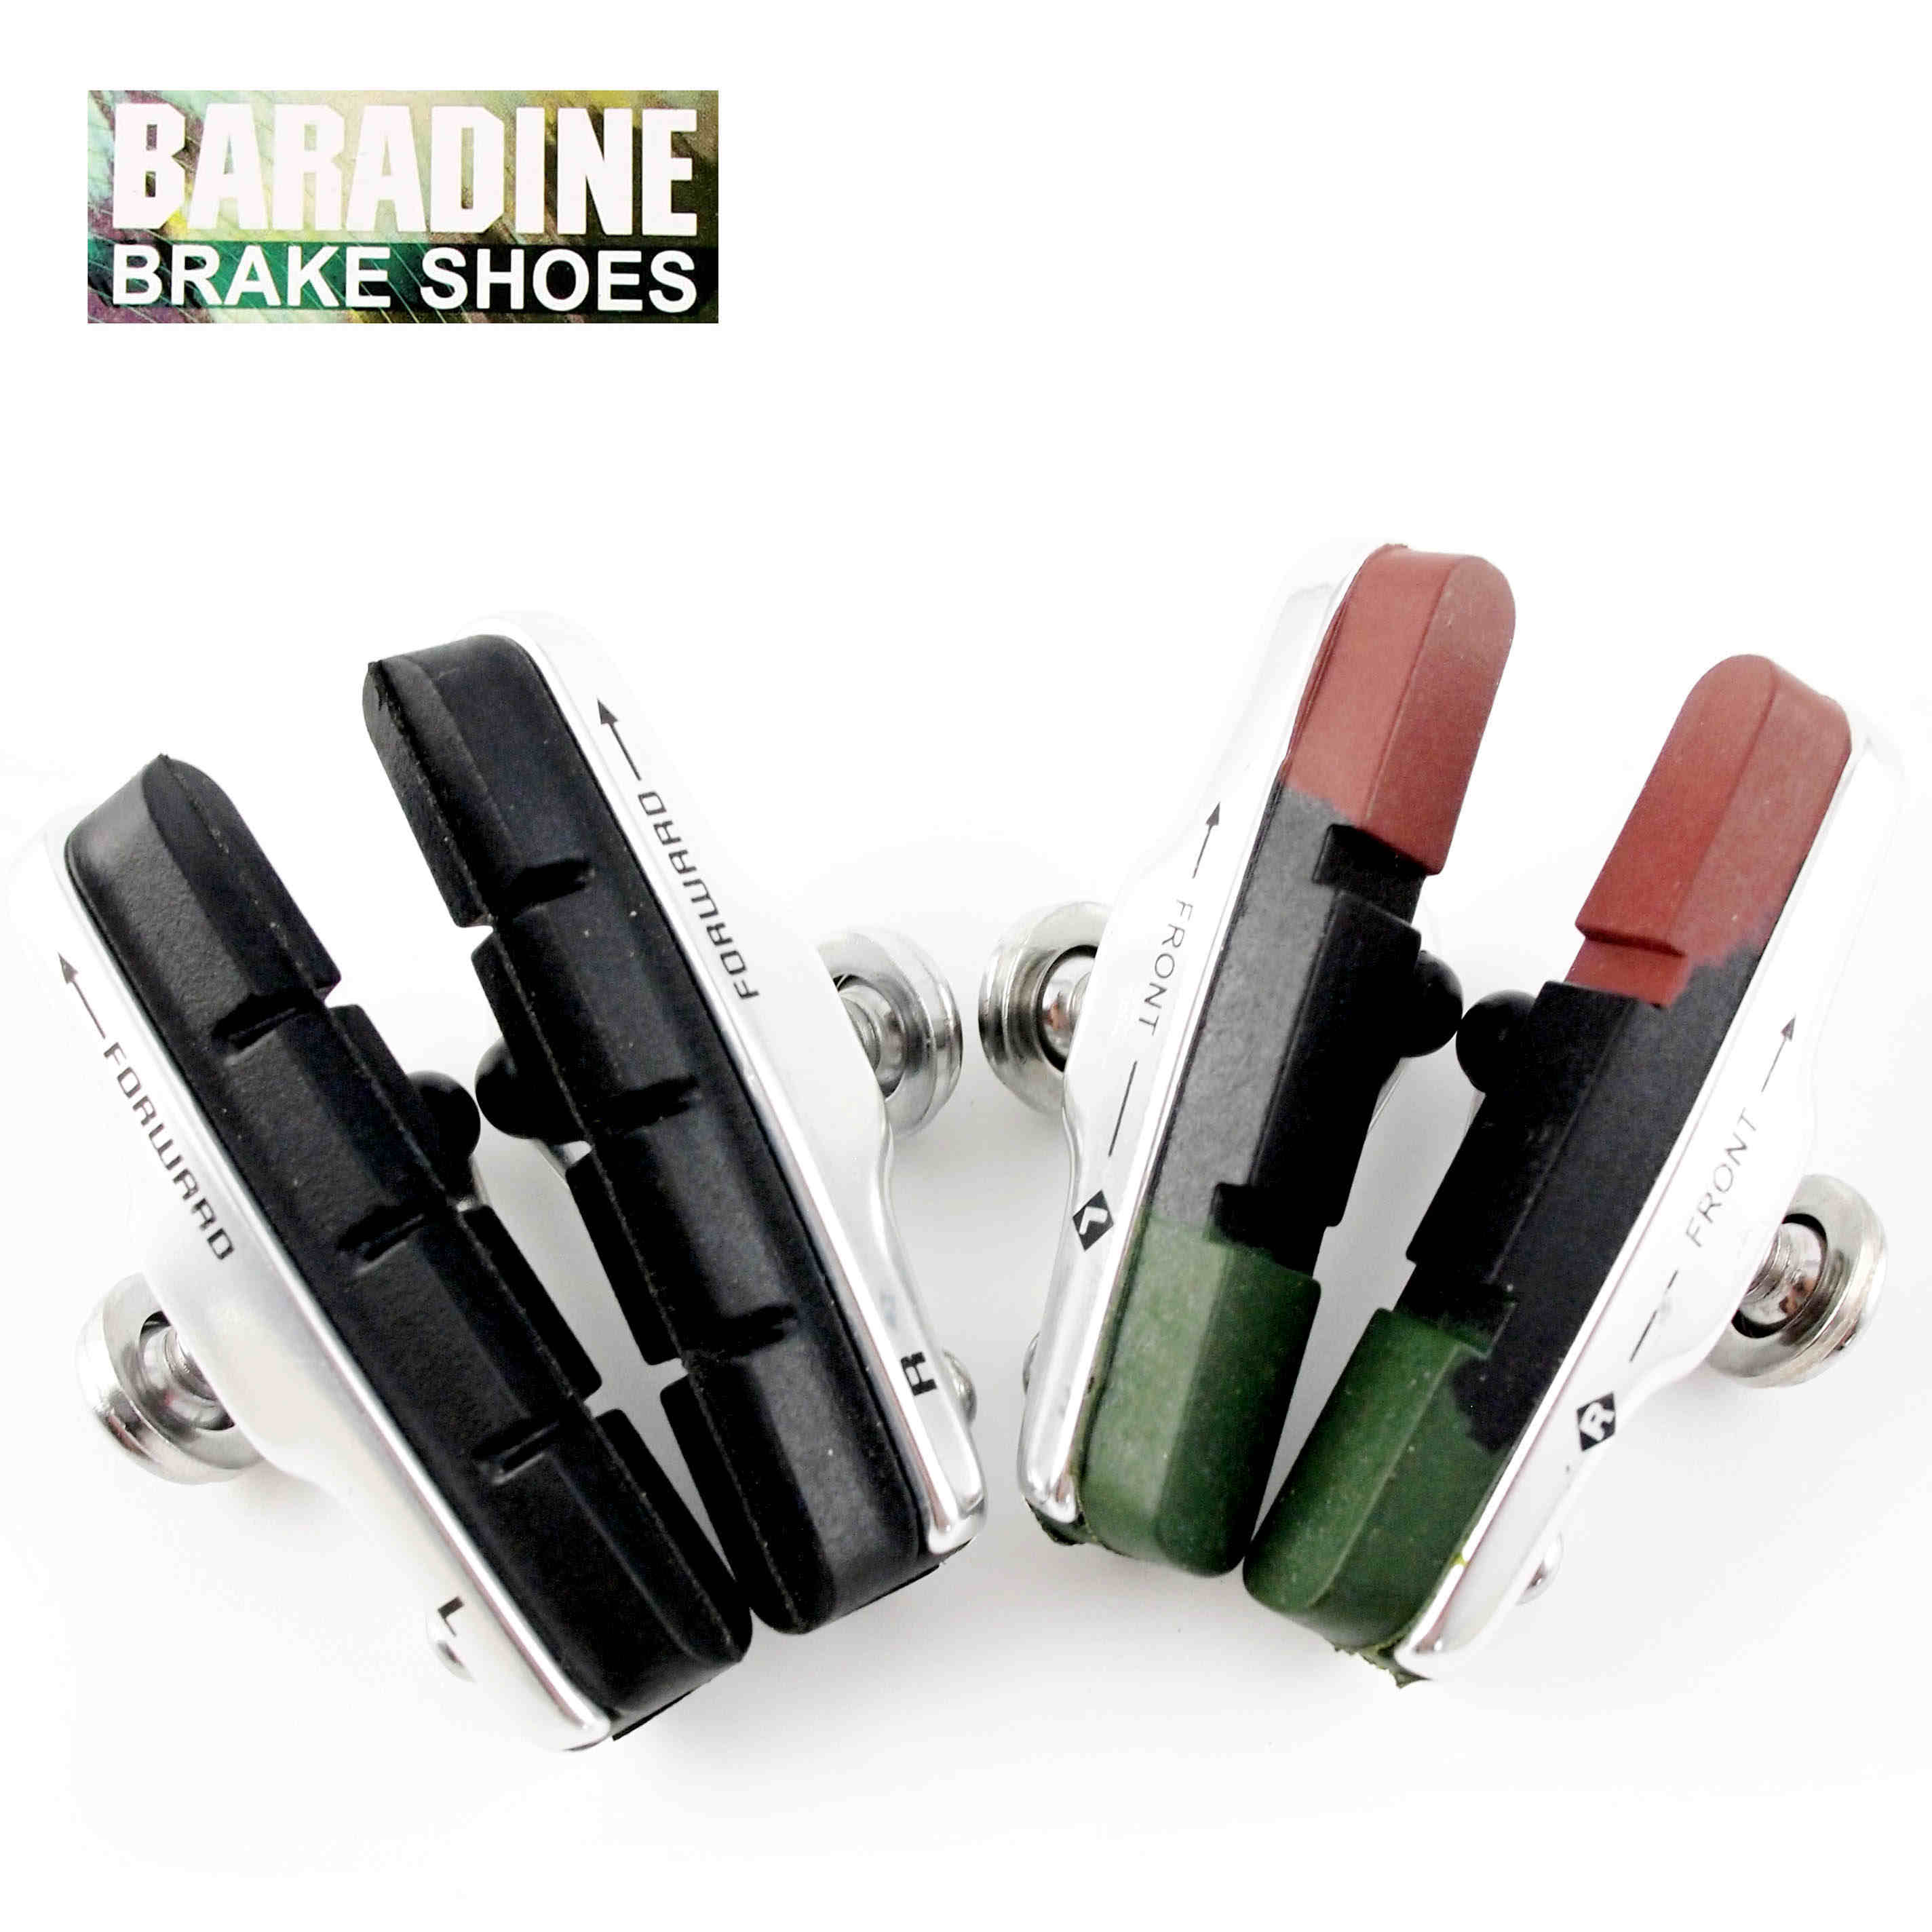 Baradine Brake Shoes